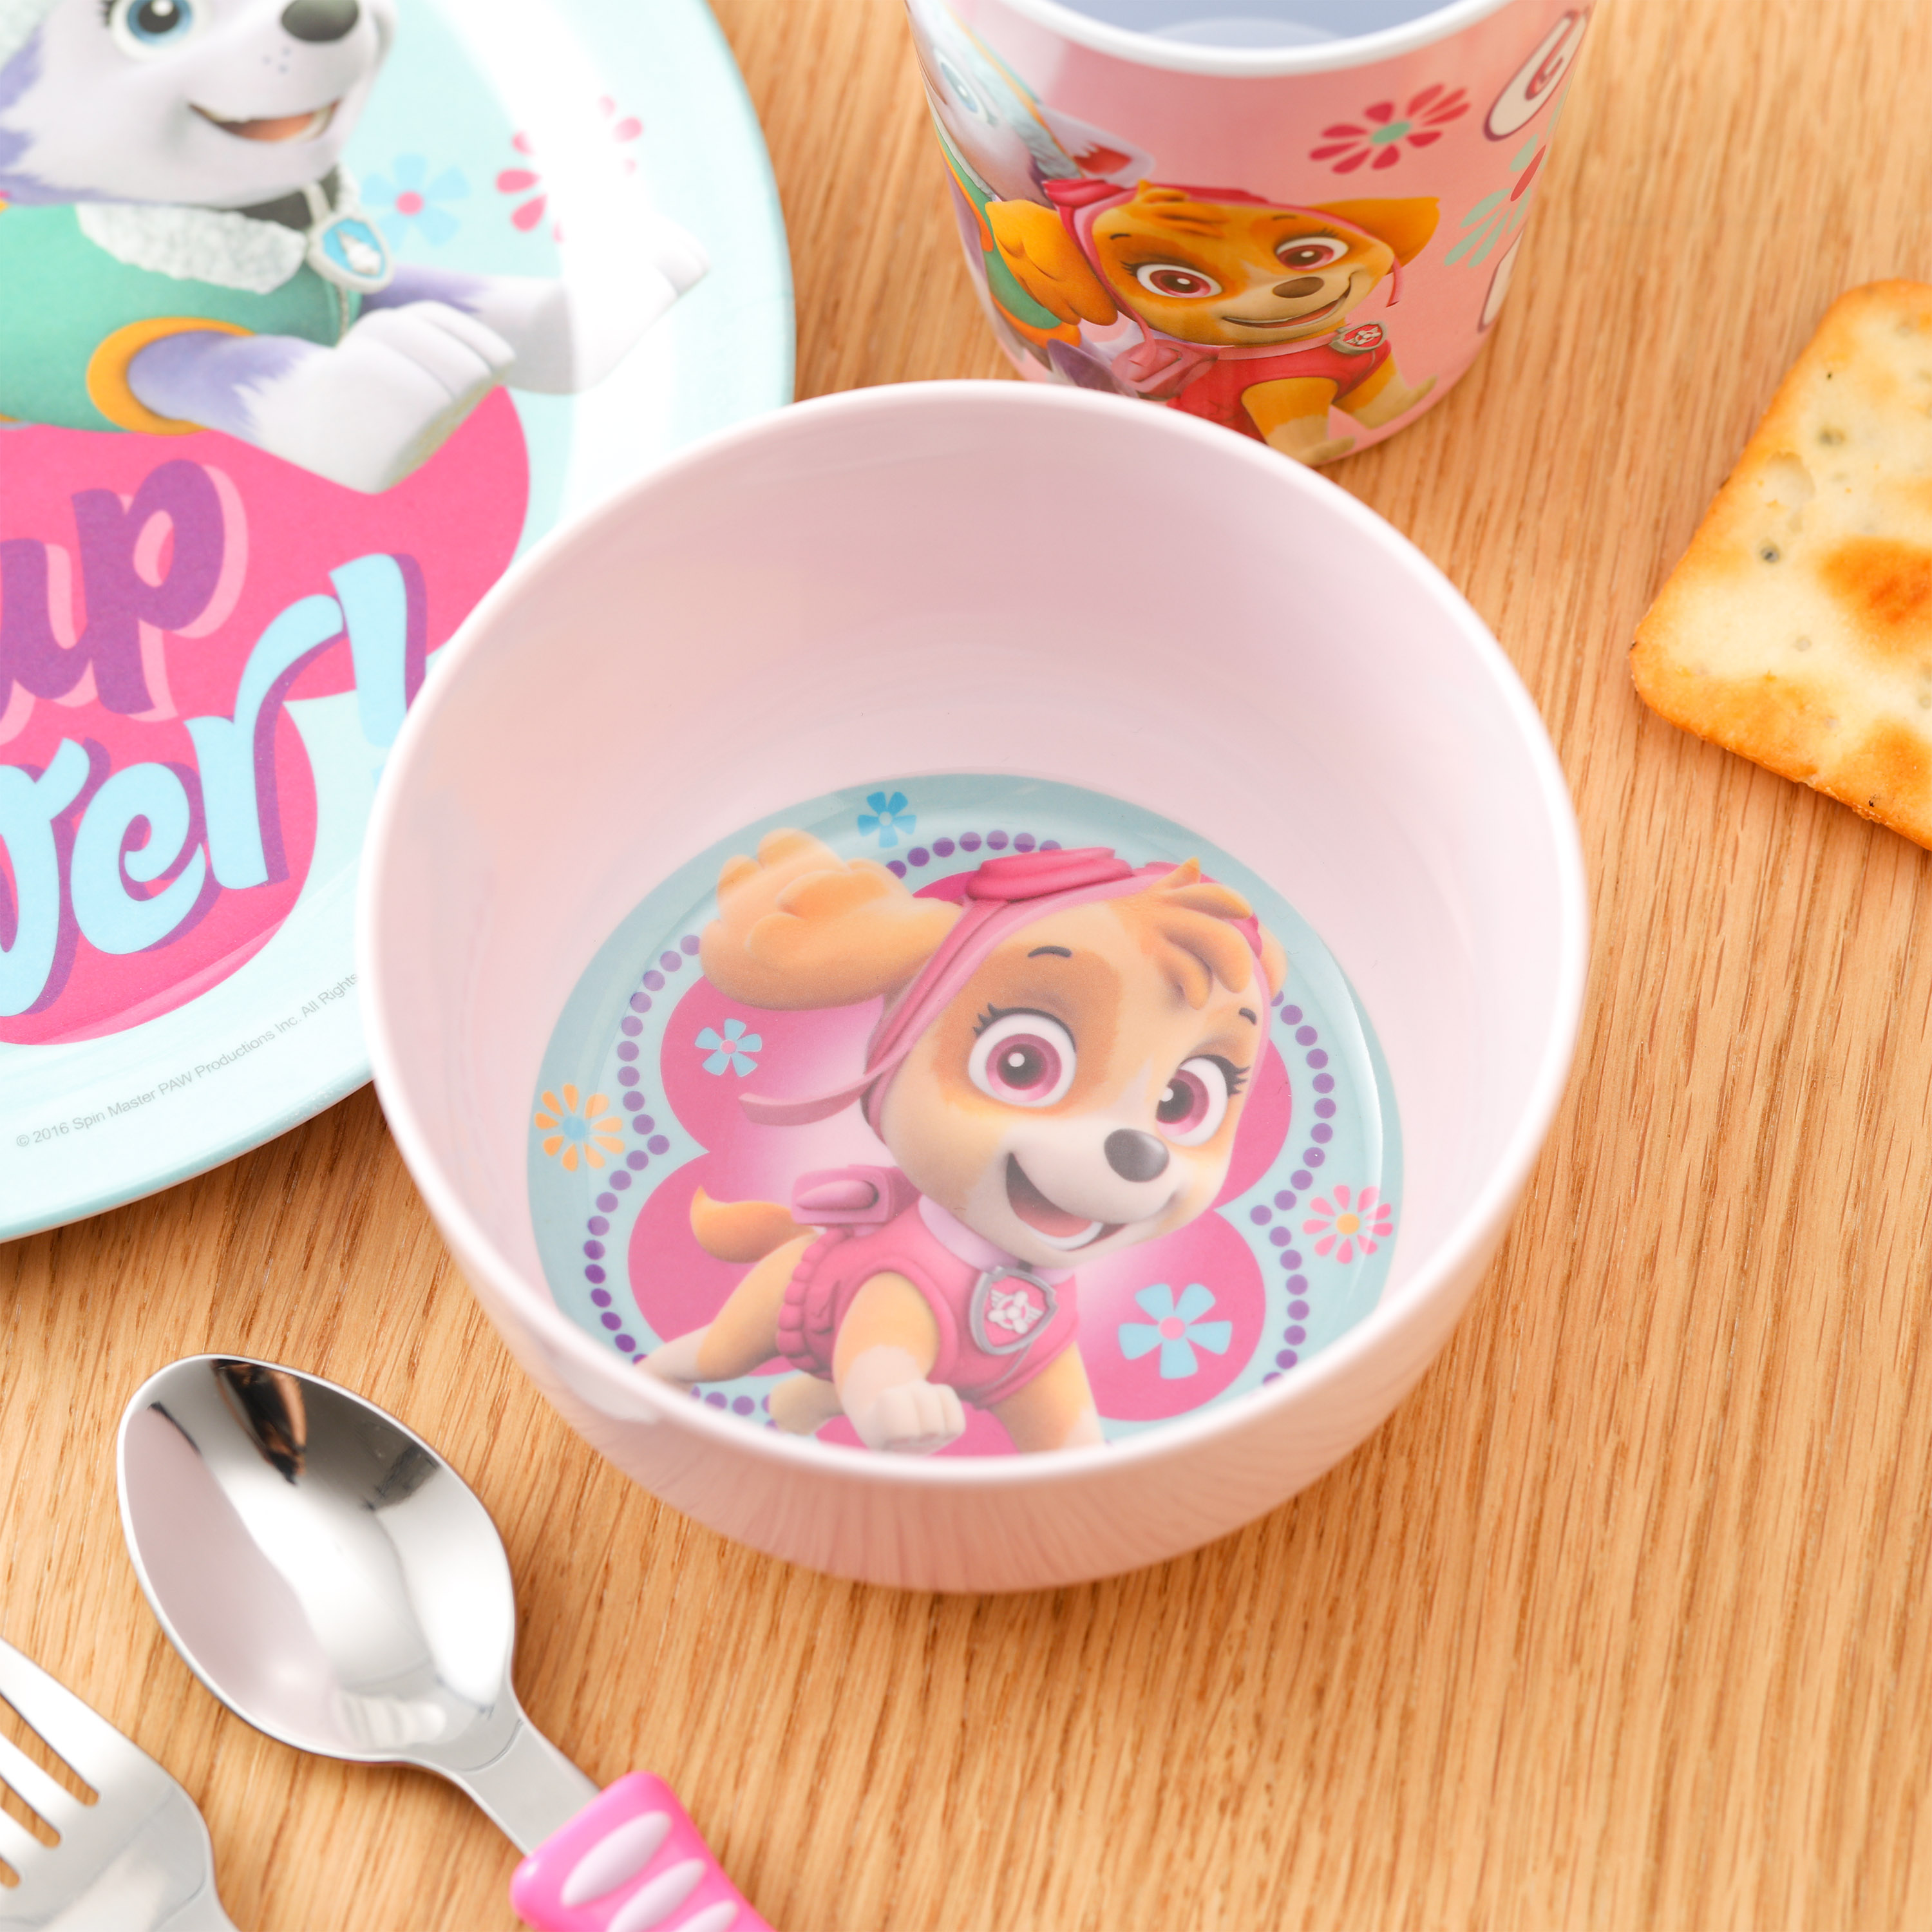 Paw Patrol Dinnerware Set, Skye and Everest, 5-piece set slideshow image 5